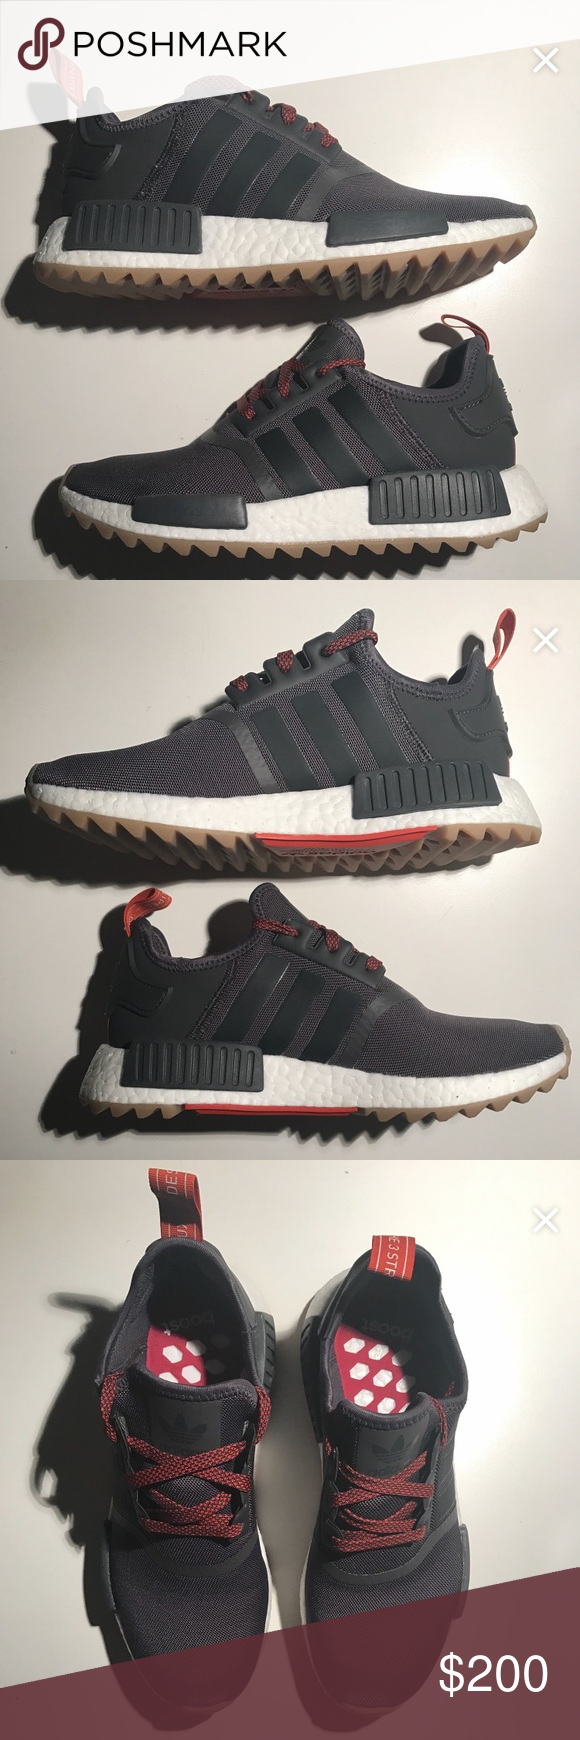 best website cc396 b1b7f adidas nmd r1 grey in Victoria Australia Free Local Classifieds